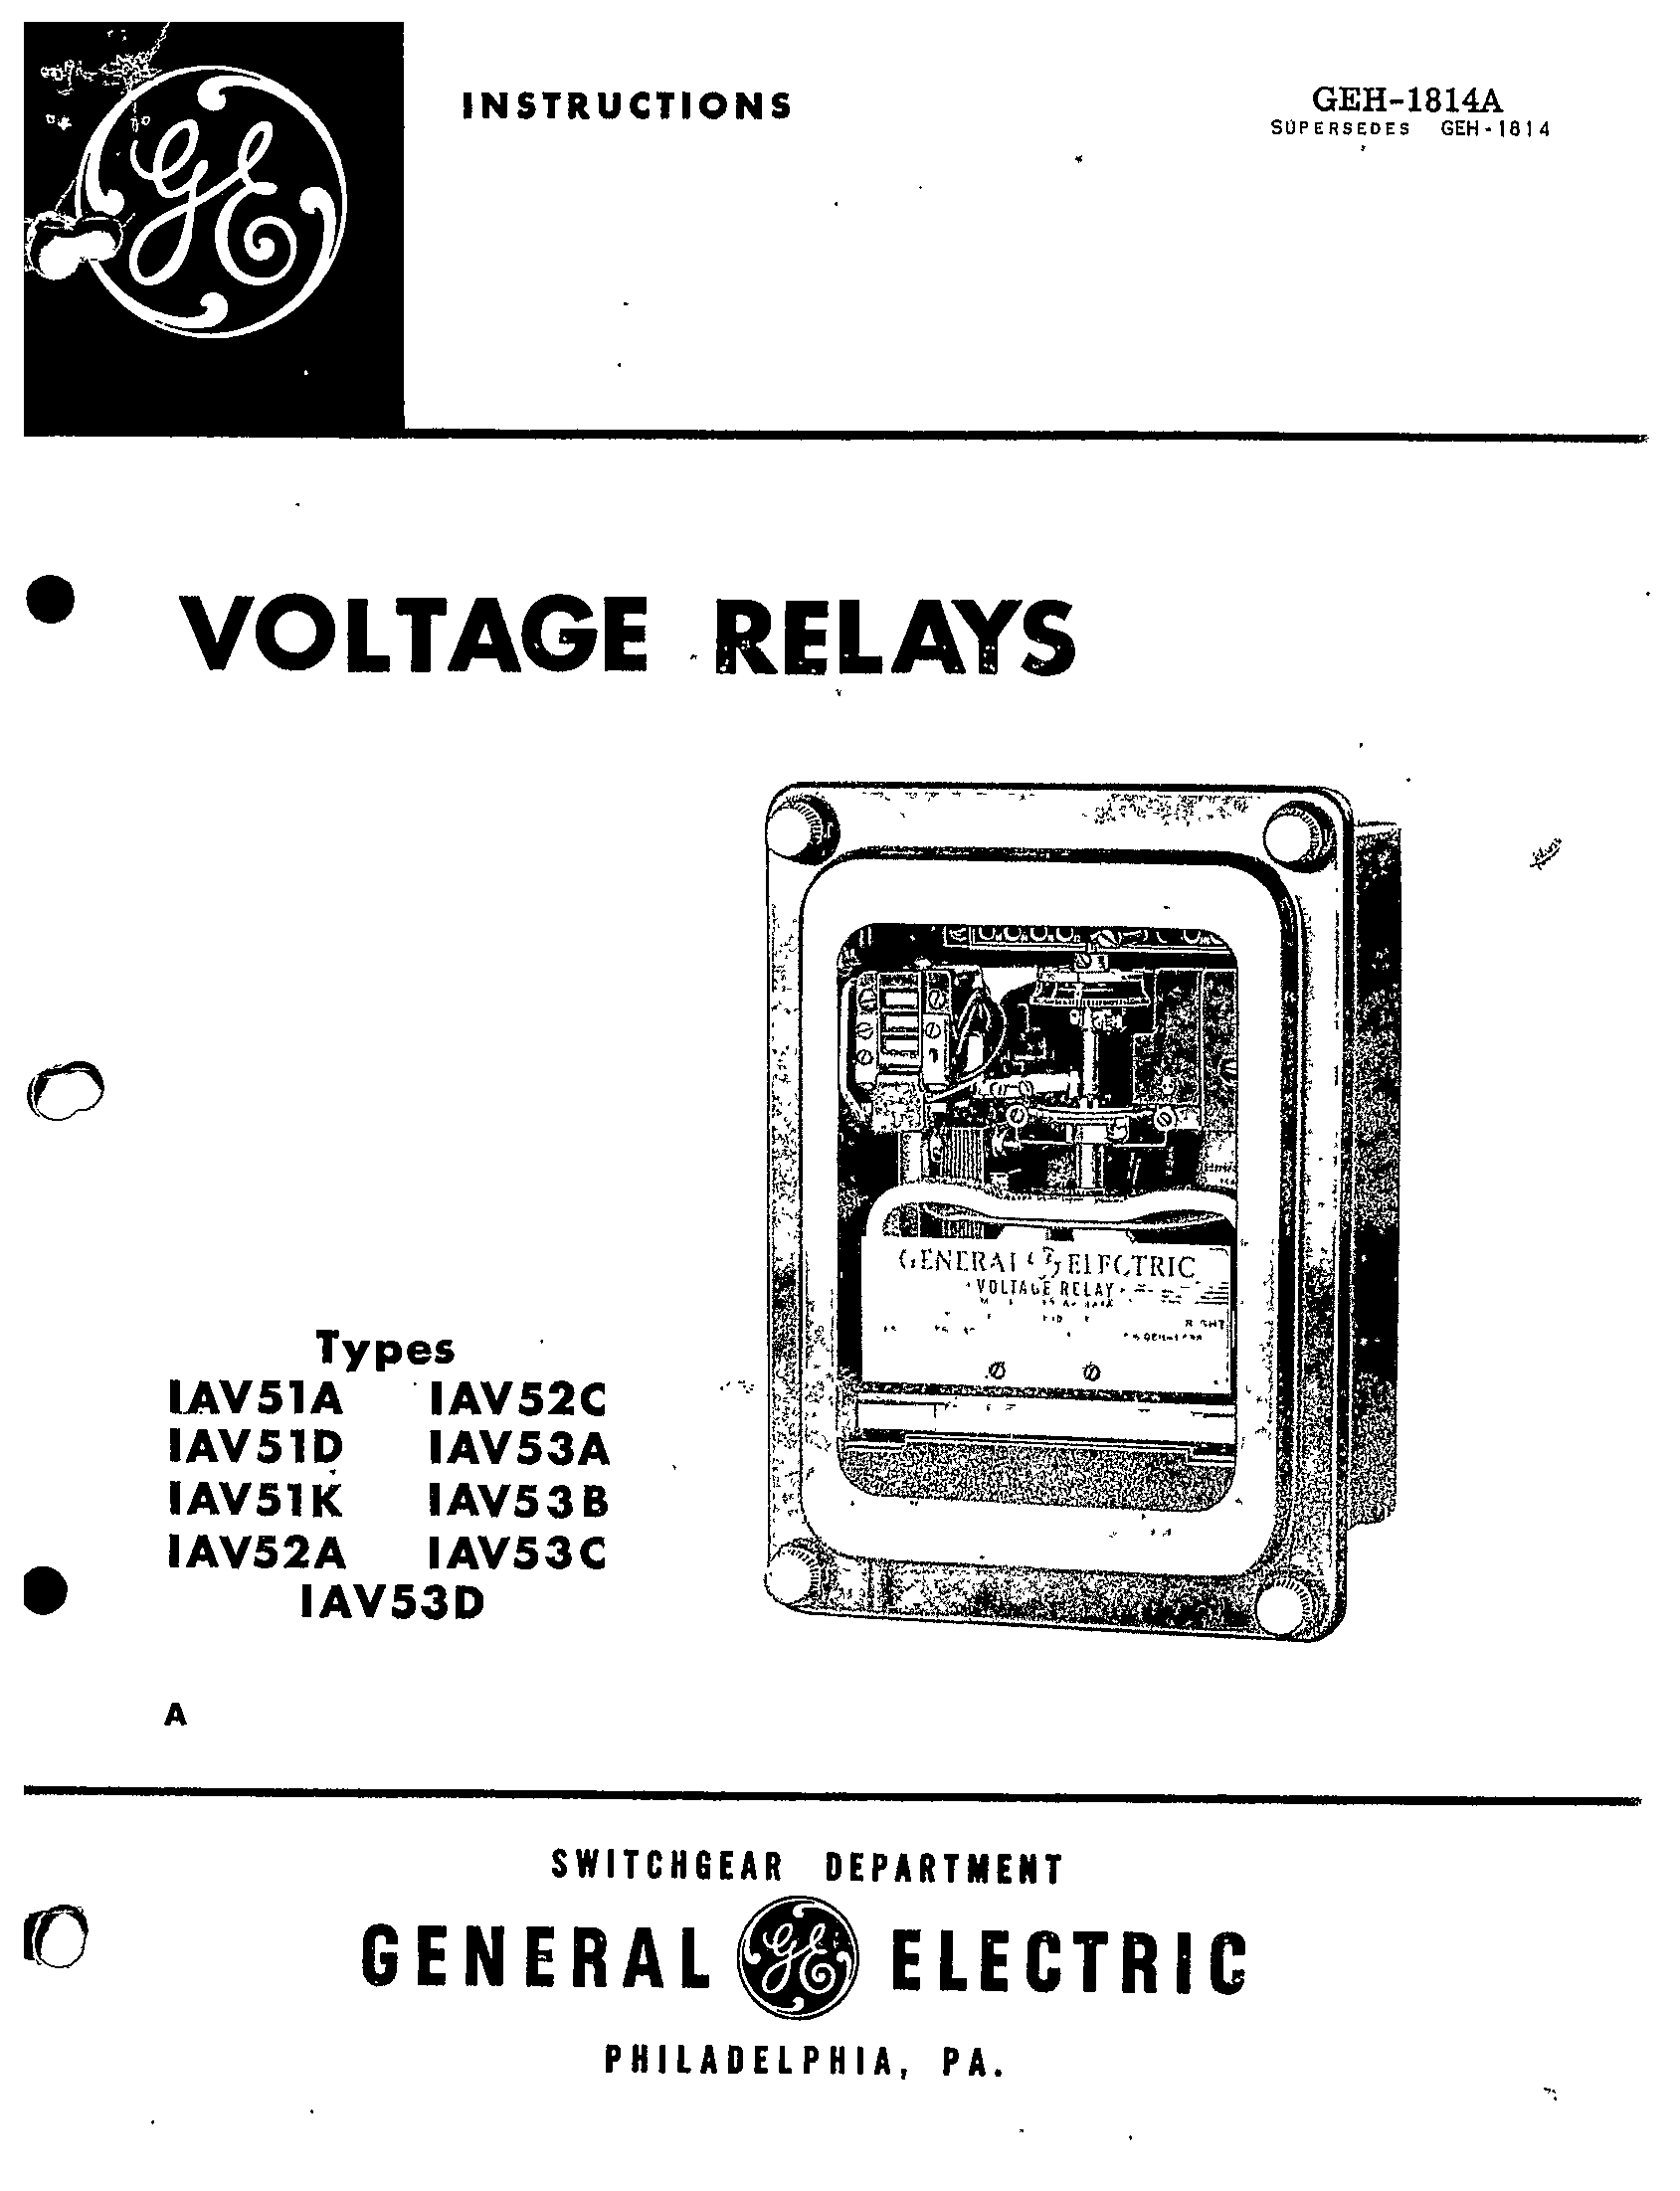 electrical relay manuals